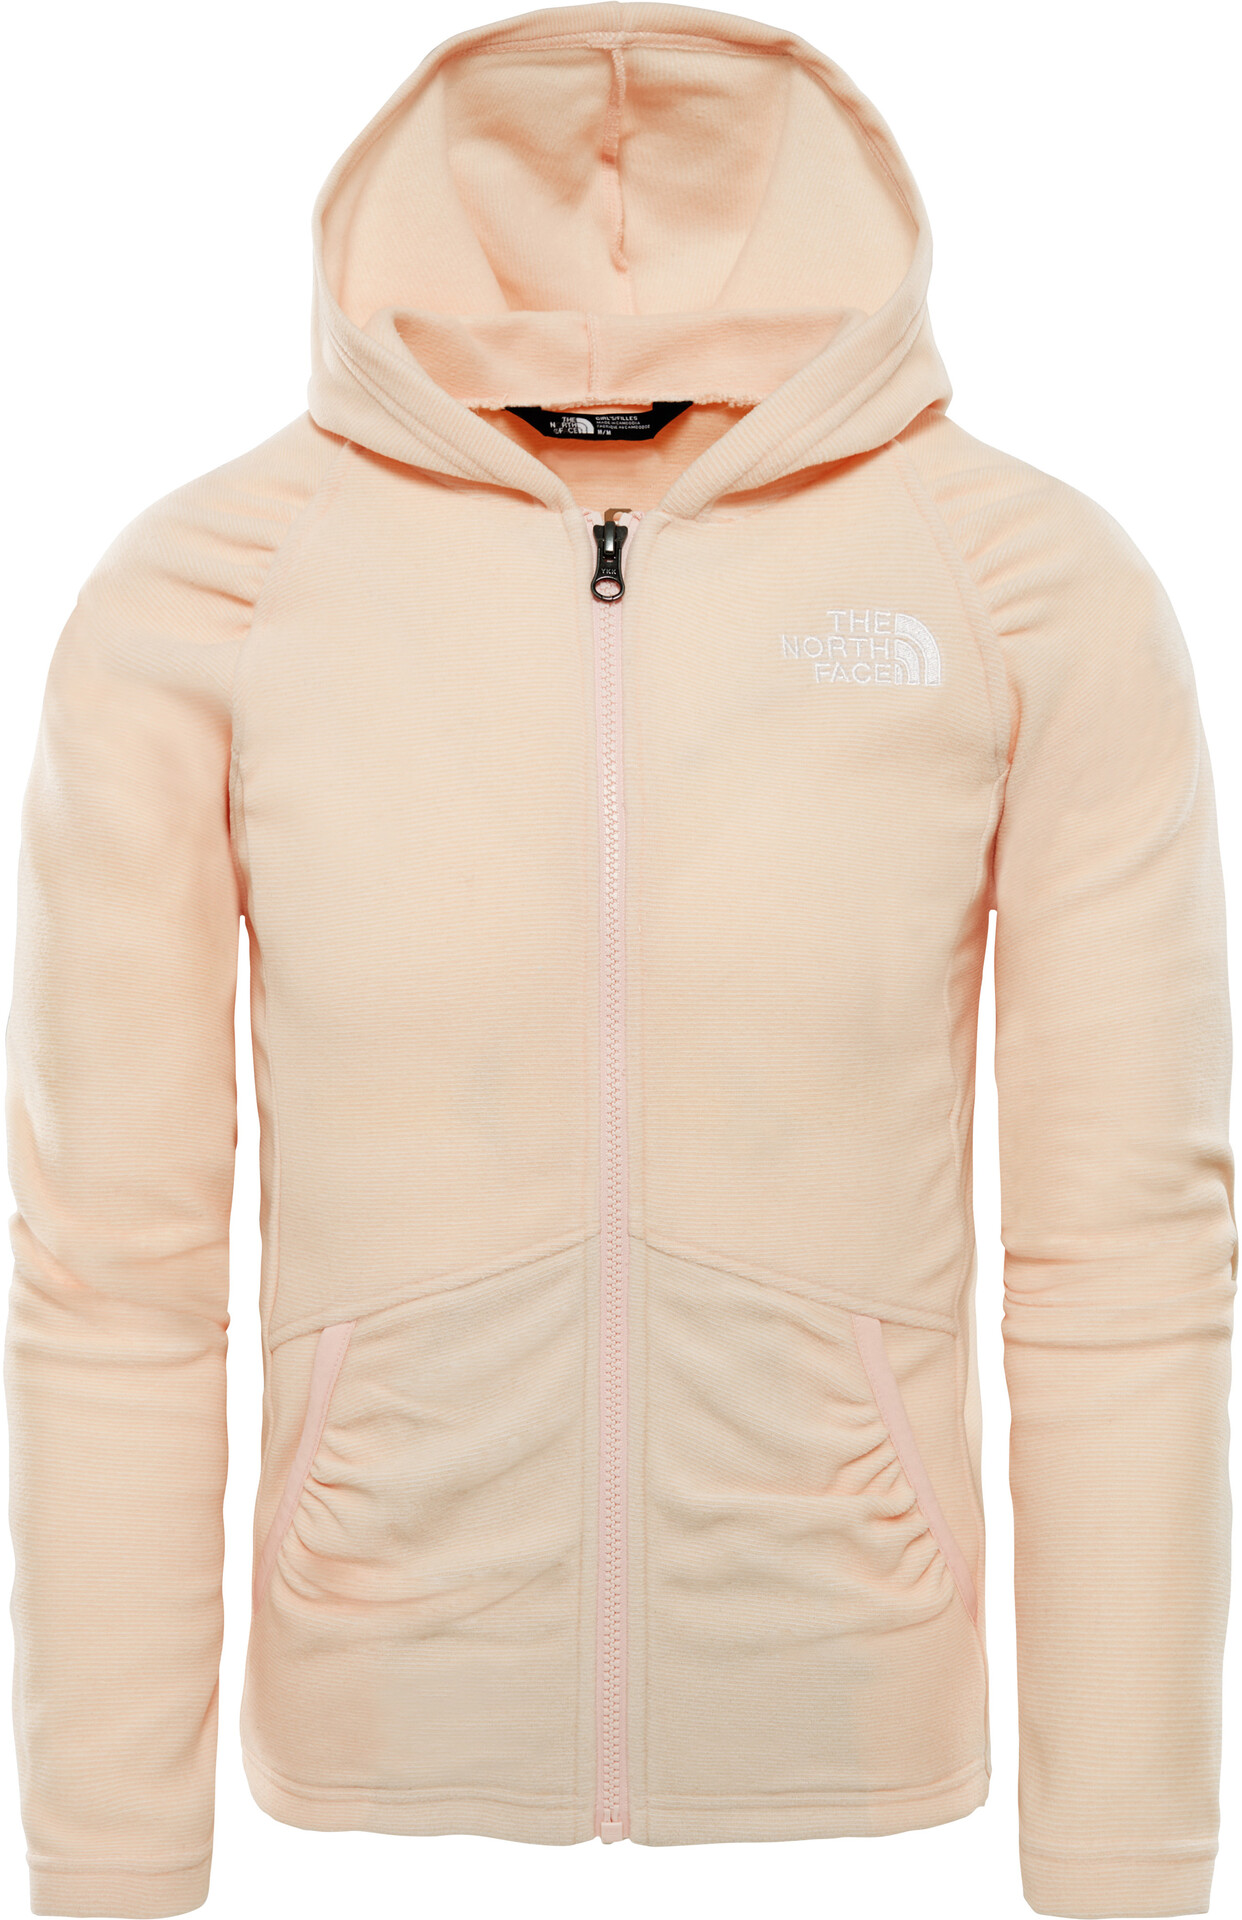 es Rosa Chaqueta Face North Niños Mezzaluna Campz The pw0qTBSW